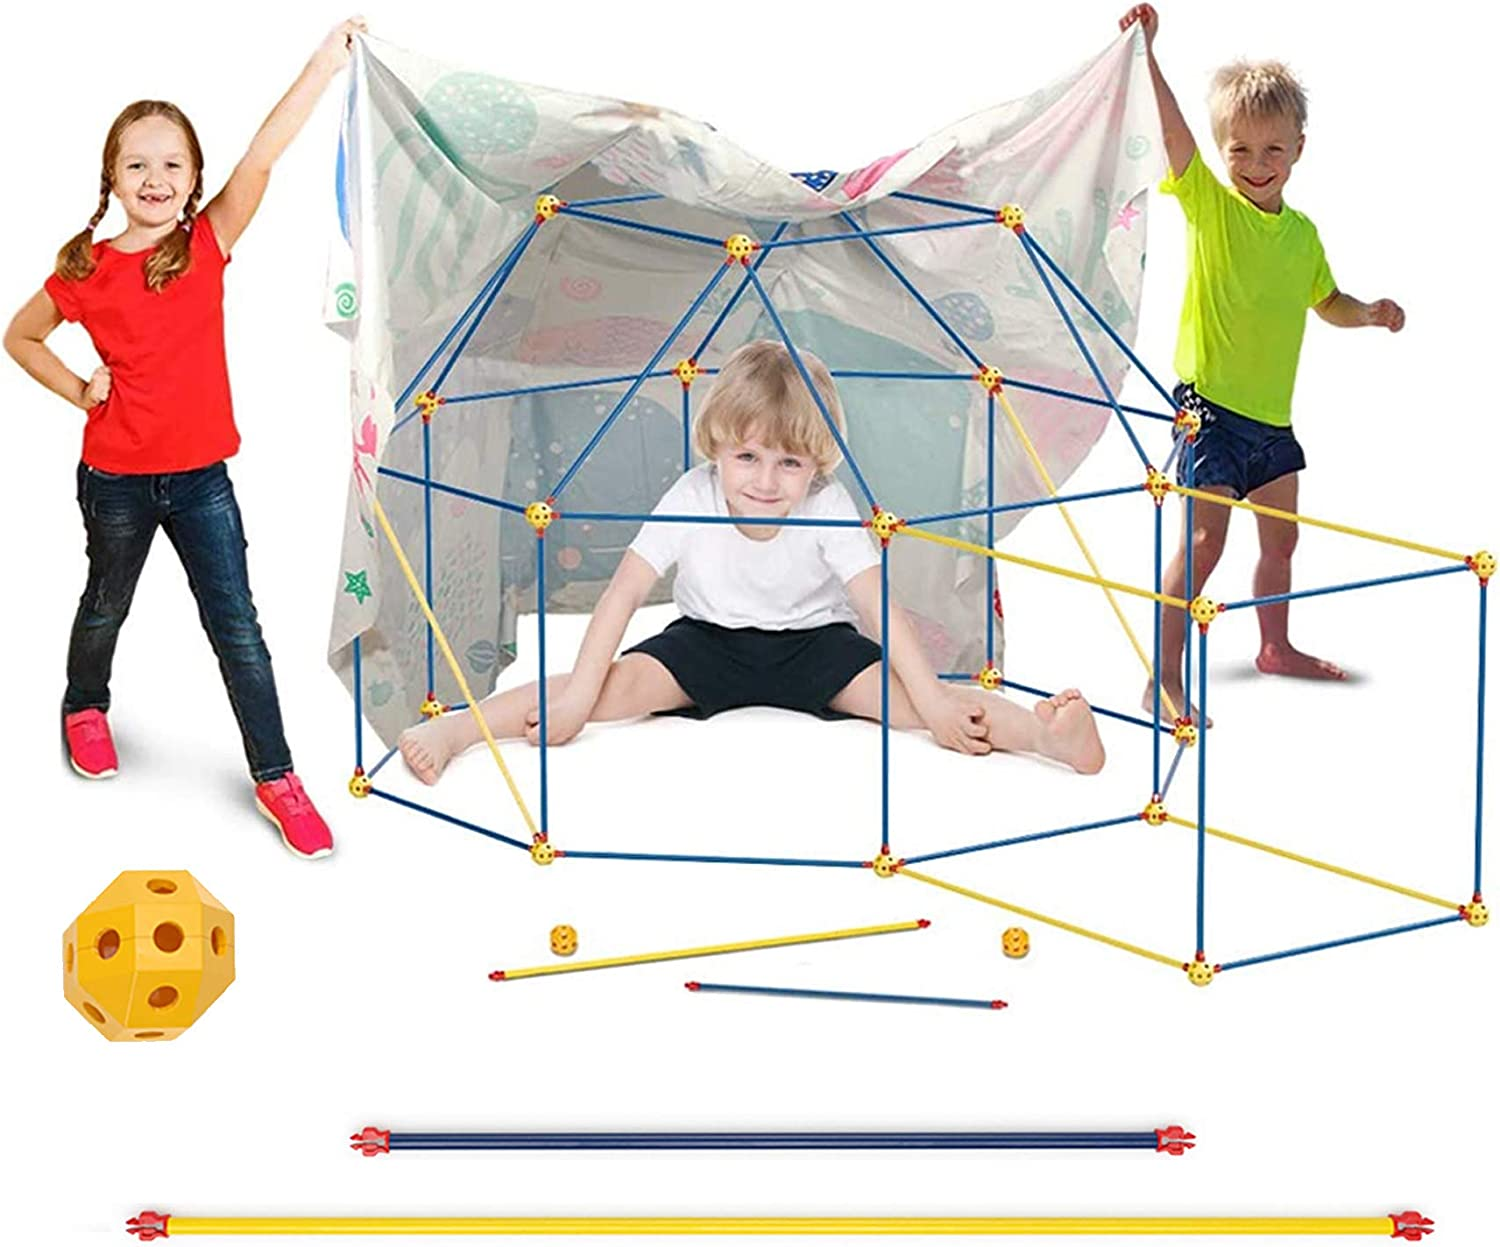 Fort Building Kit for Kids Boys Girls, WUEAOA Castle Tunnels Make Play Tent Tower, Toys for DIY Builder Indoor Outdoor, with Connecting Rods & Multilink Spheres, 100 Pcs(3-12 Age, with Tent Sheet)